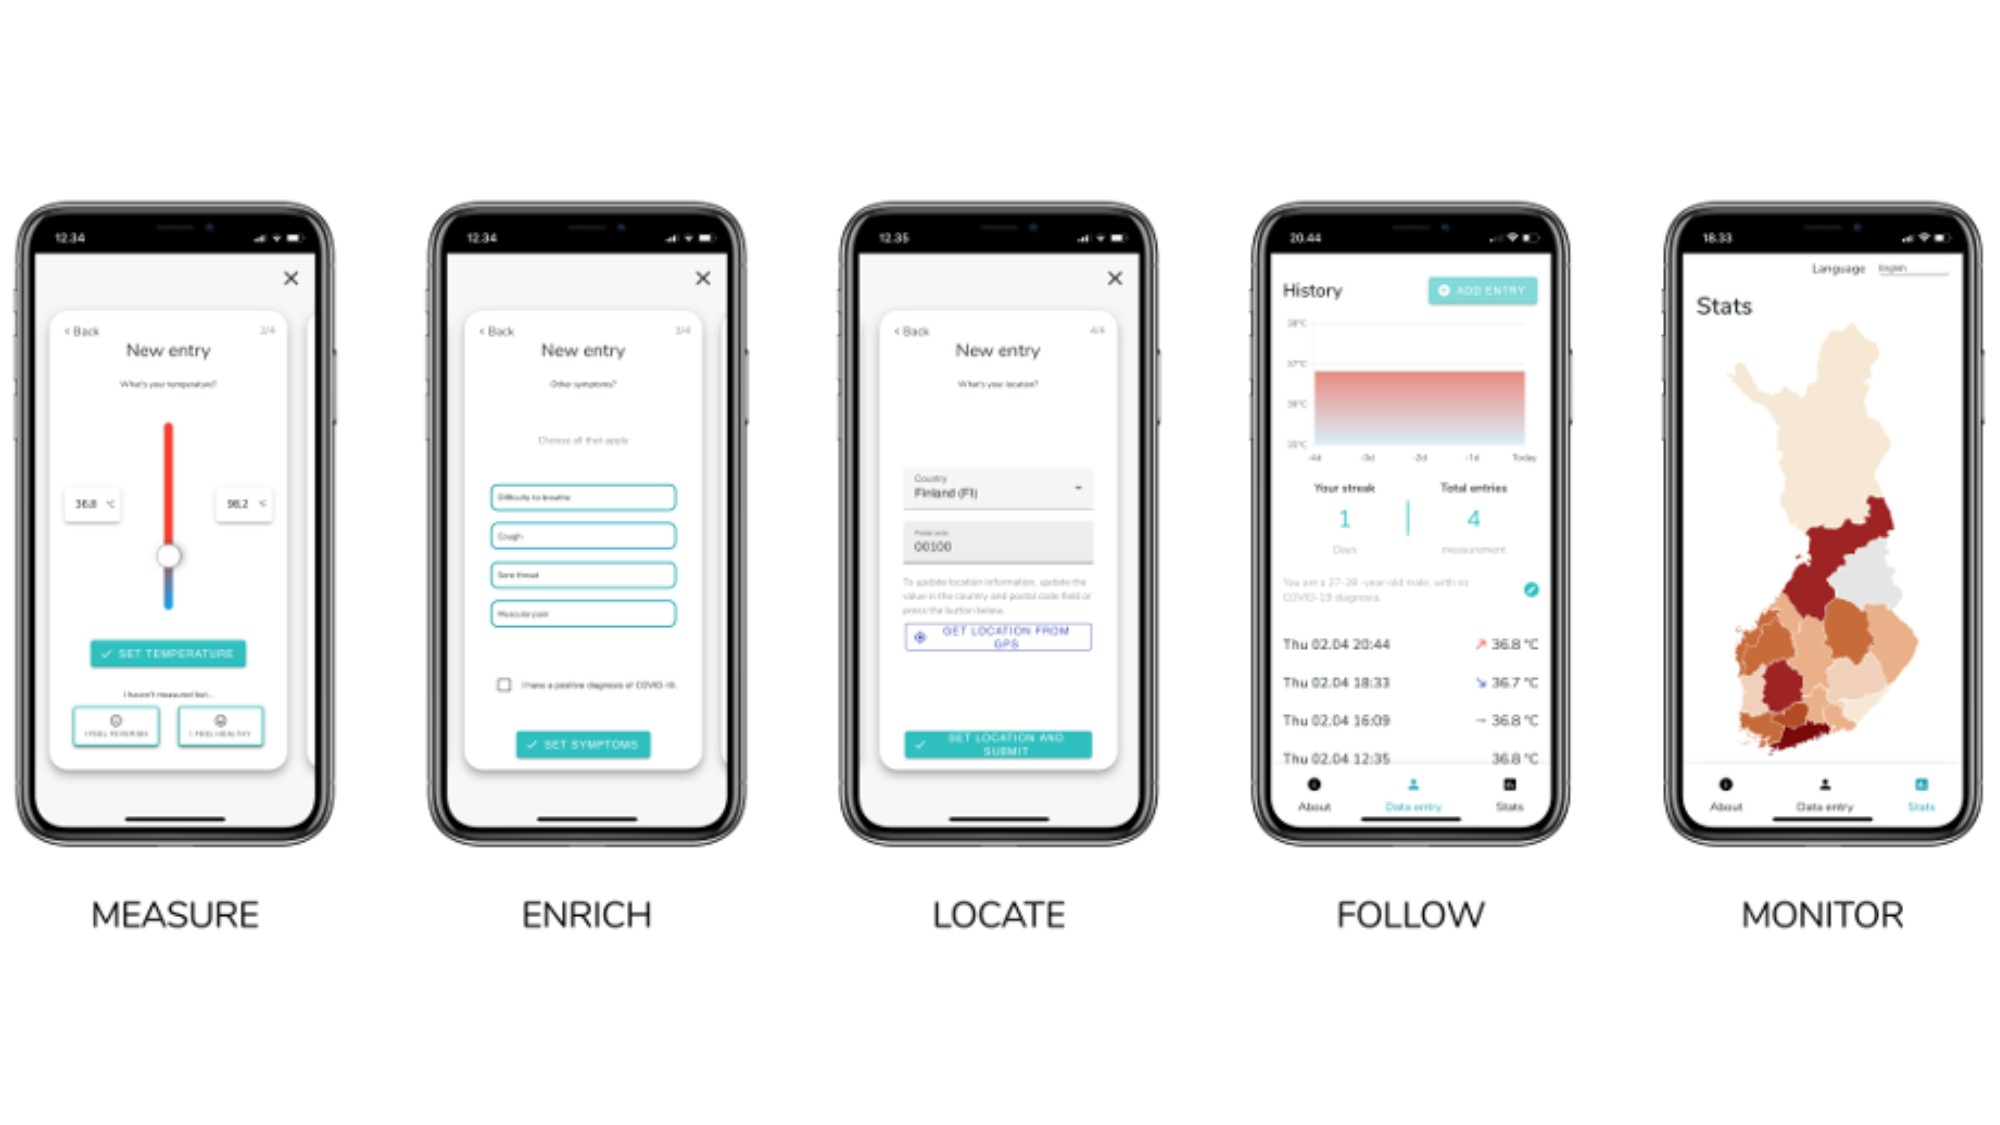 Interface of the fevermap app